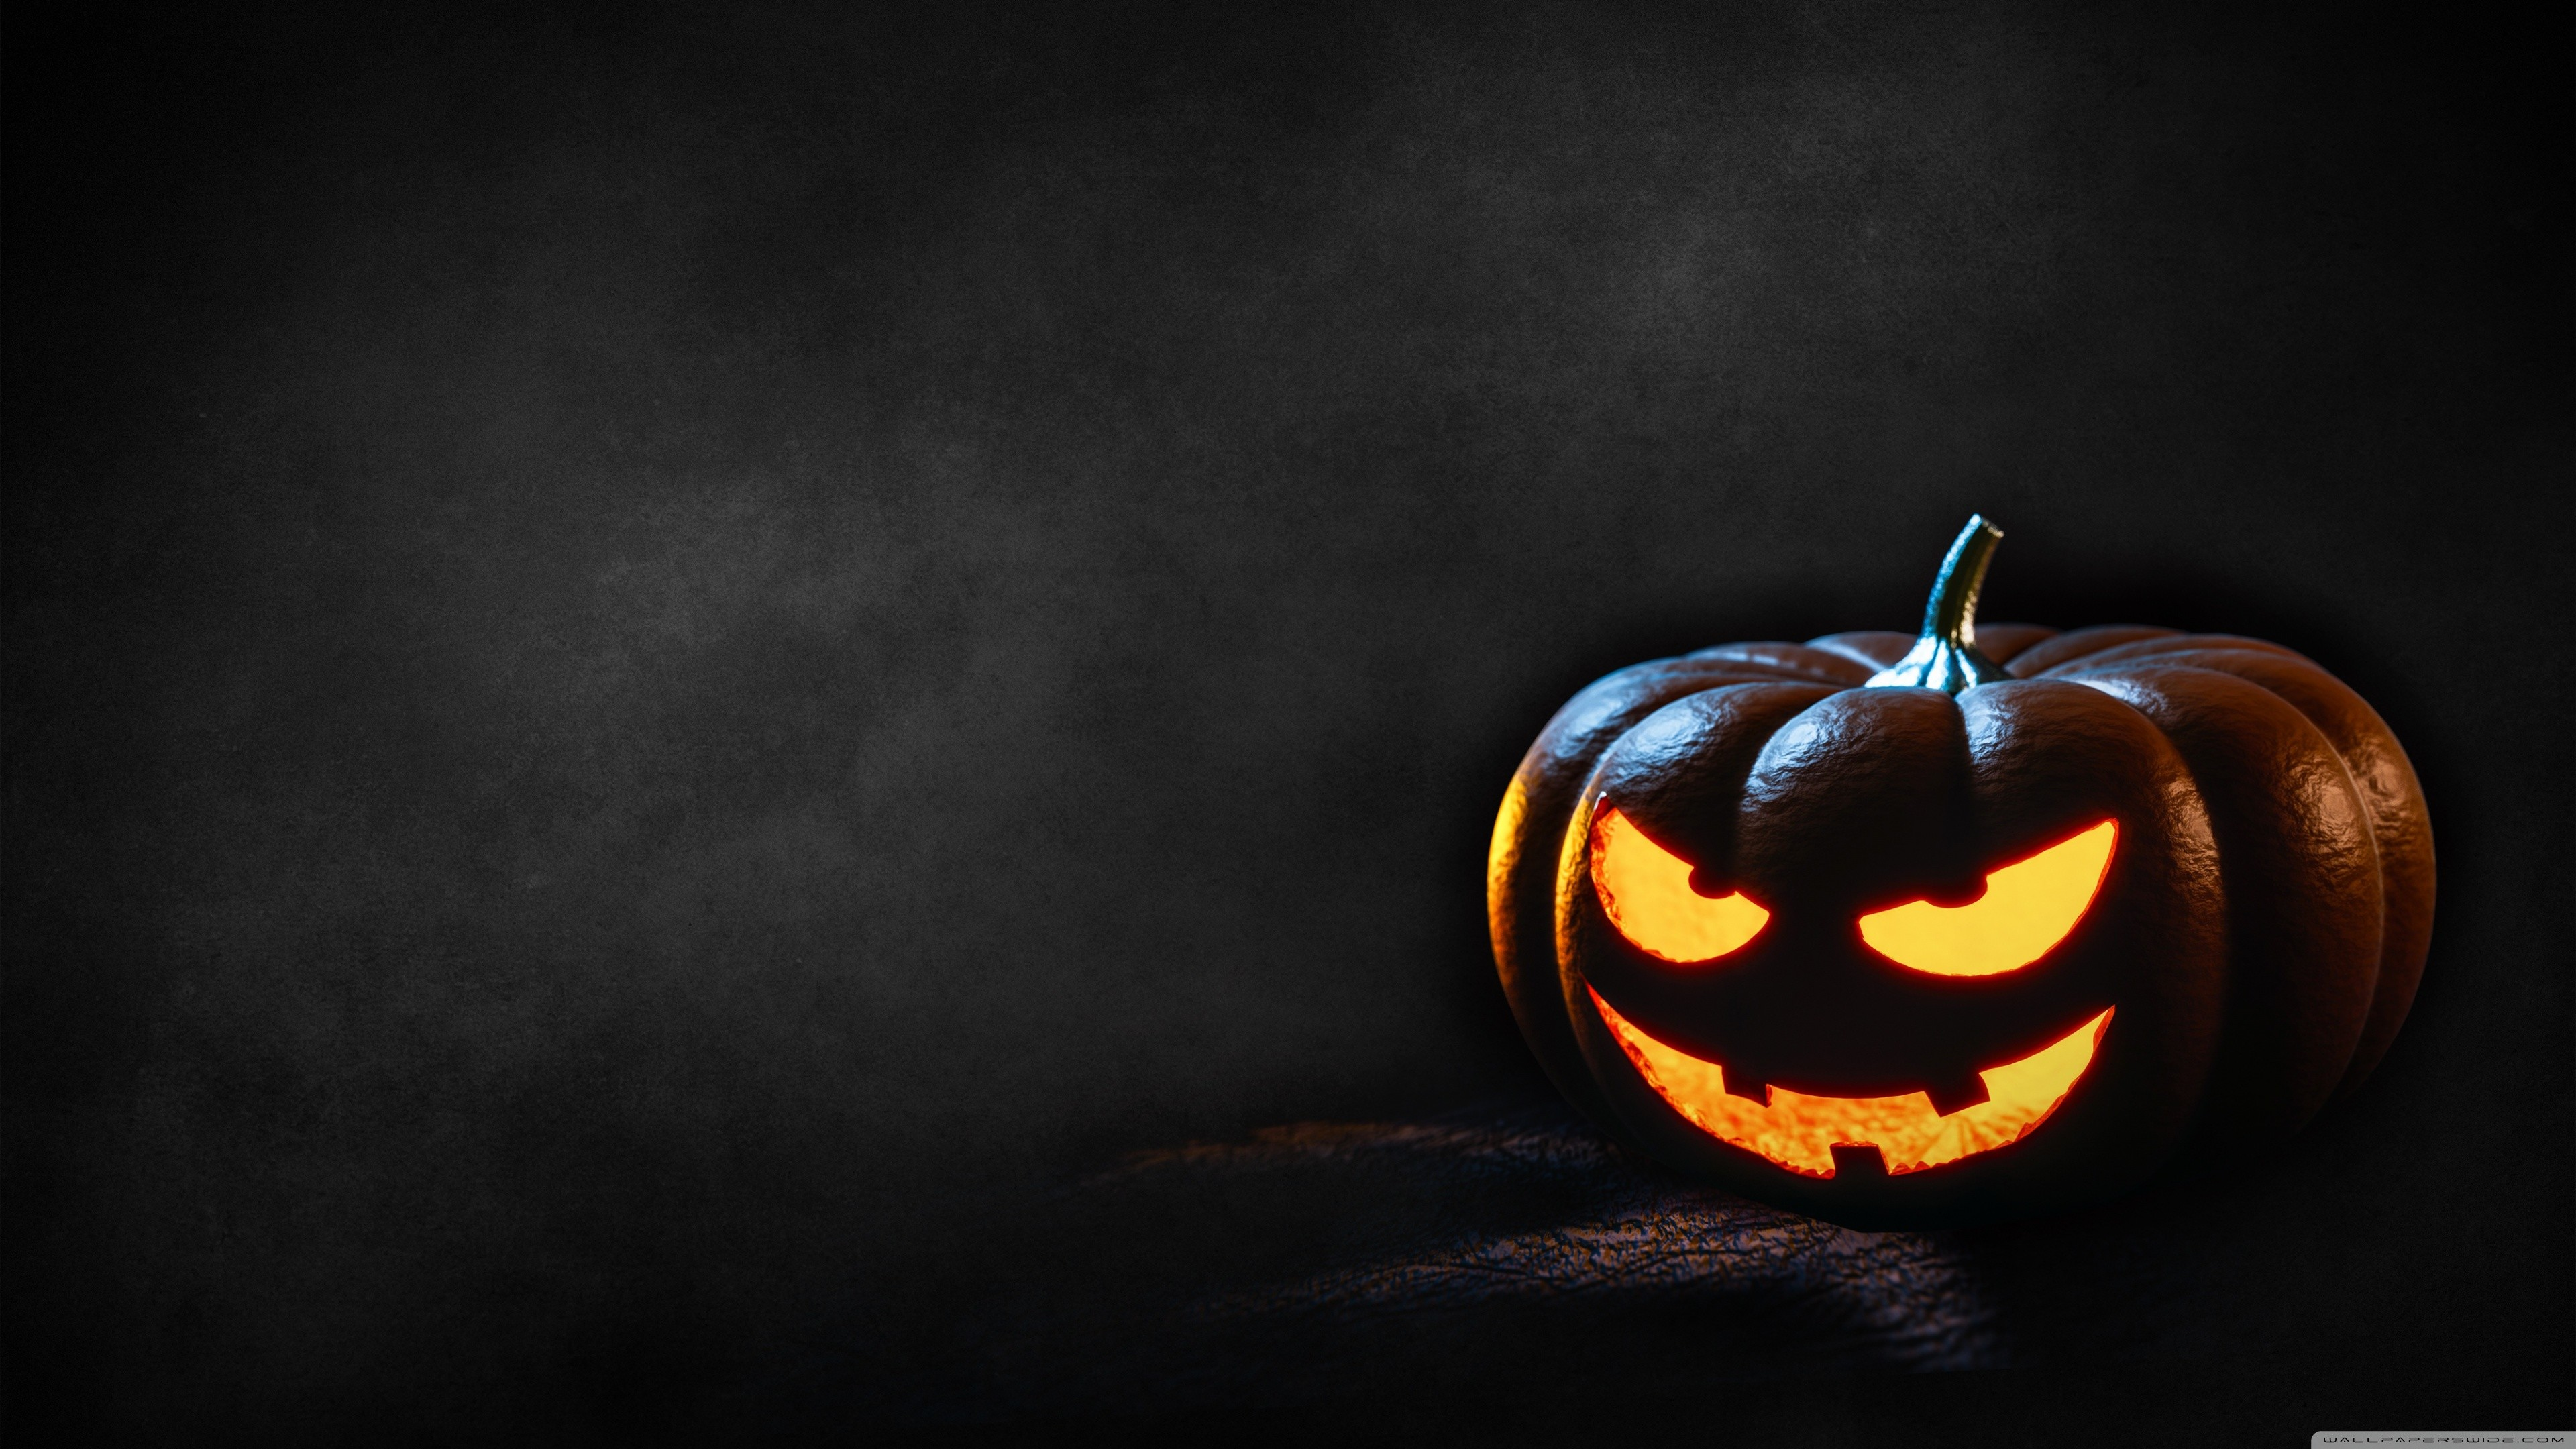 78 Halloween Desktop Wallpapers on WallpaperPlay 3840x2160